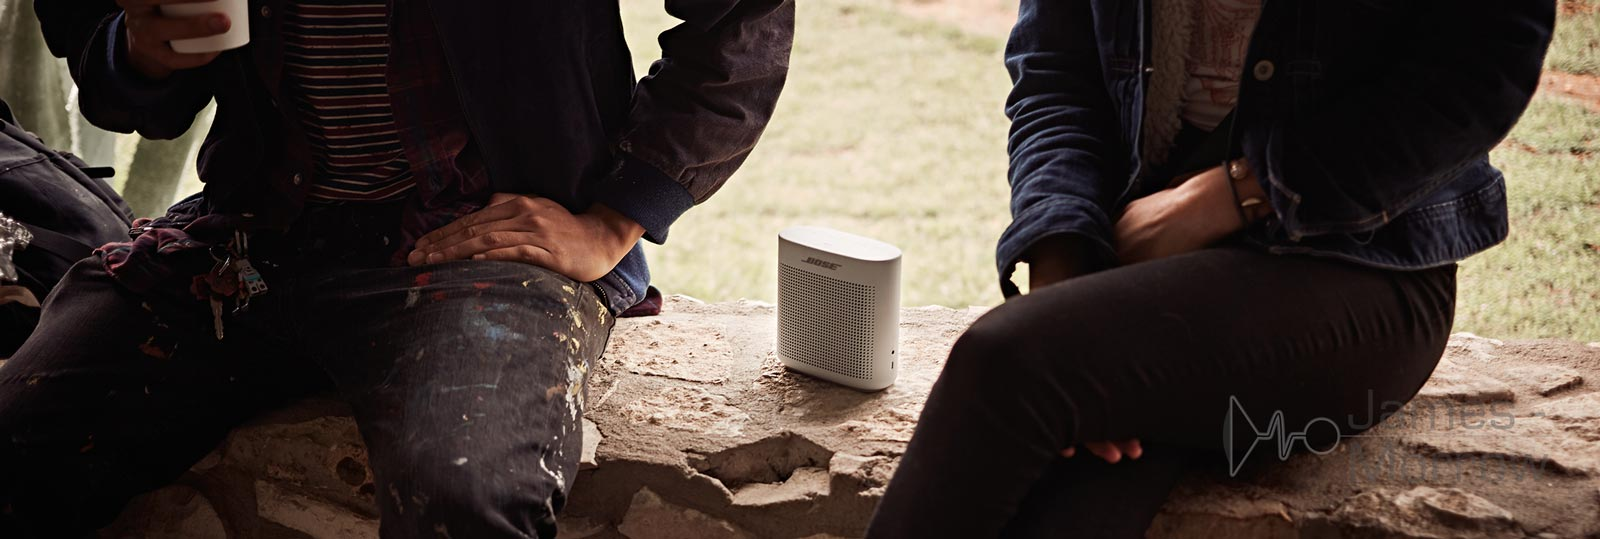 Bose SoundLink Colour II white on ground with two people lifestyle image